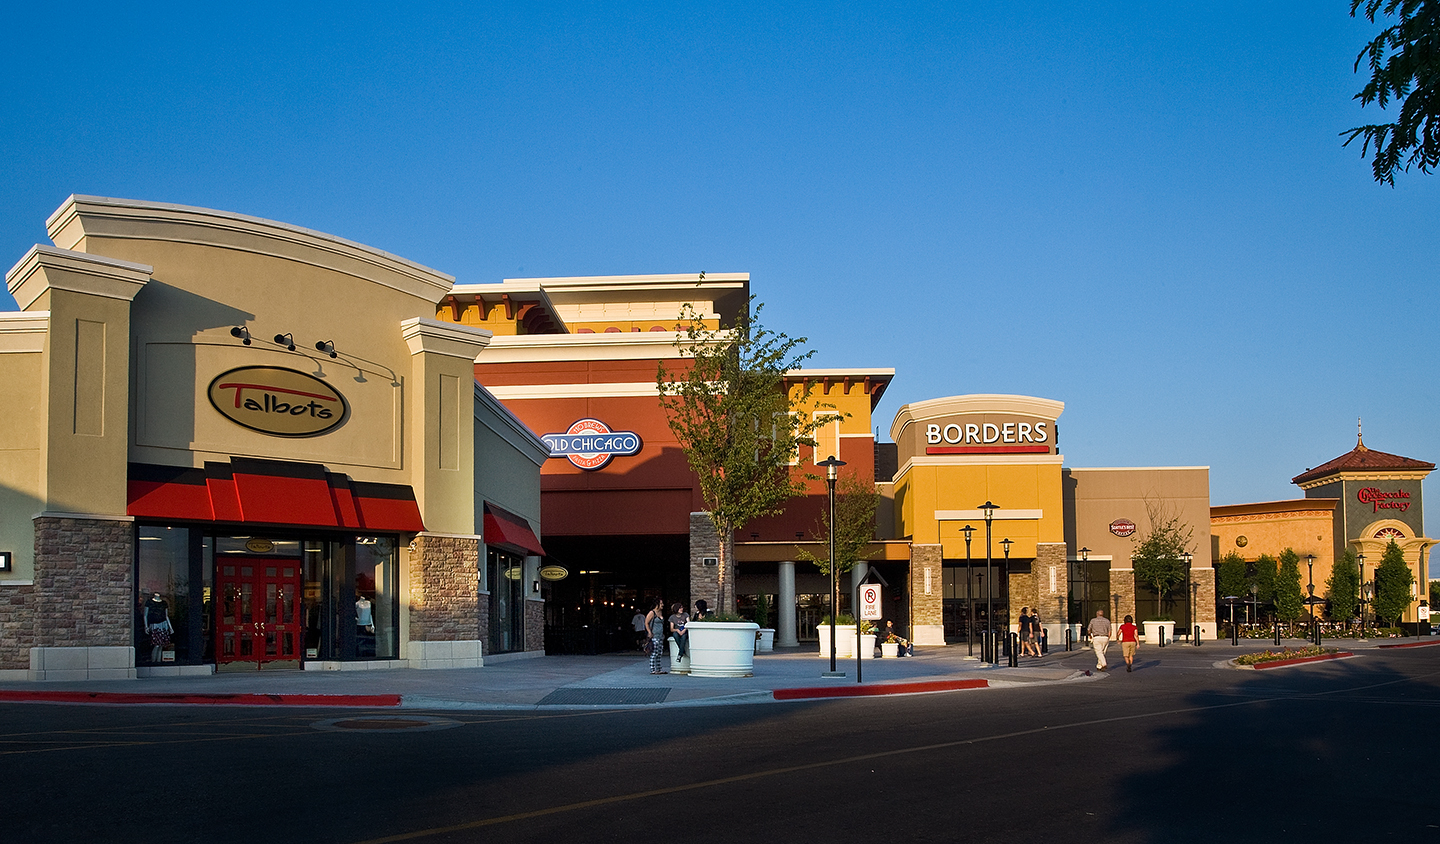 Lk architecture boise towne square boise id - Boston interiors clearance center ...